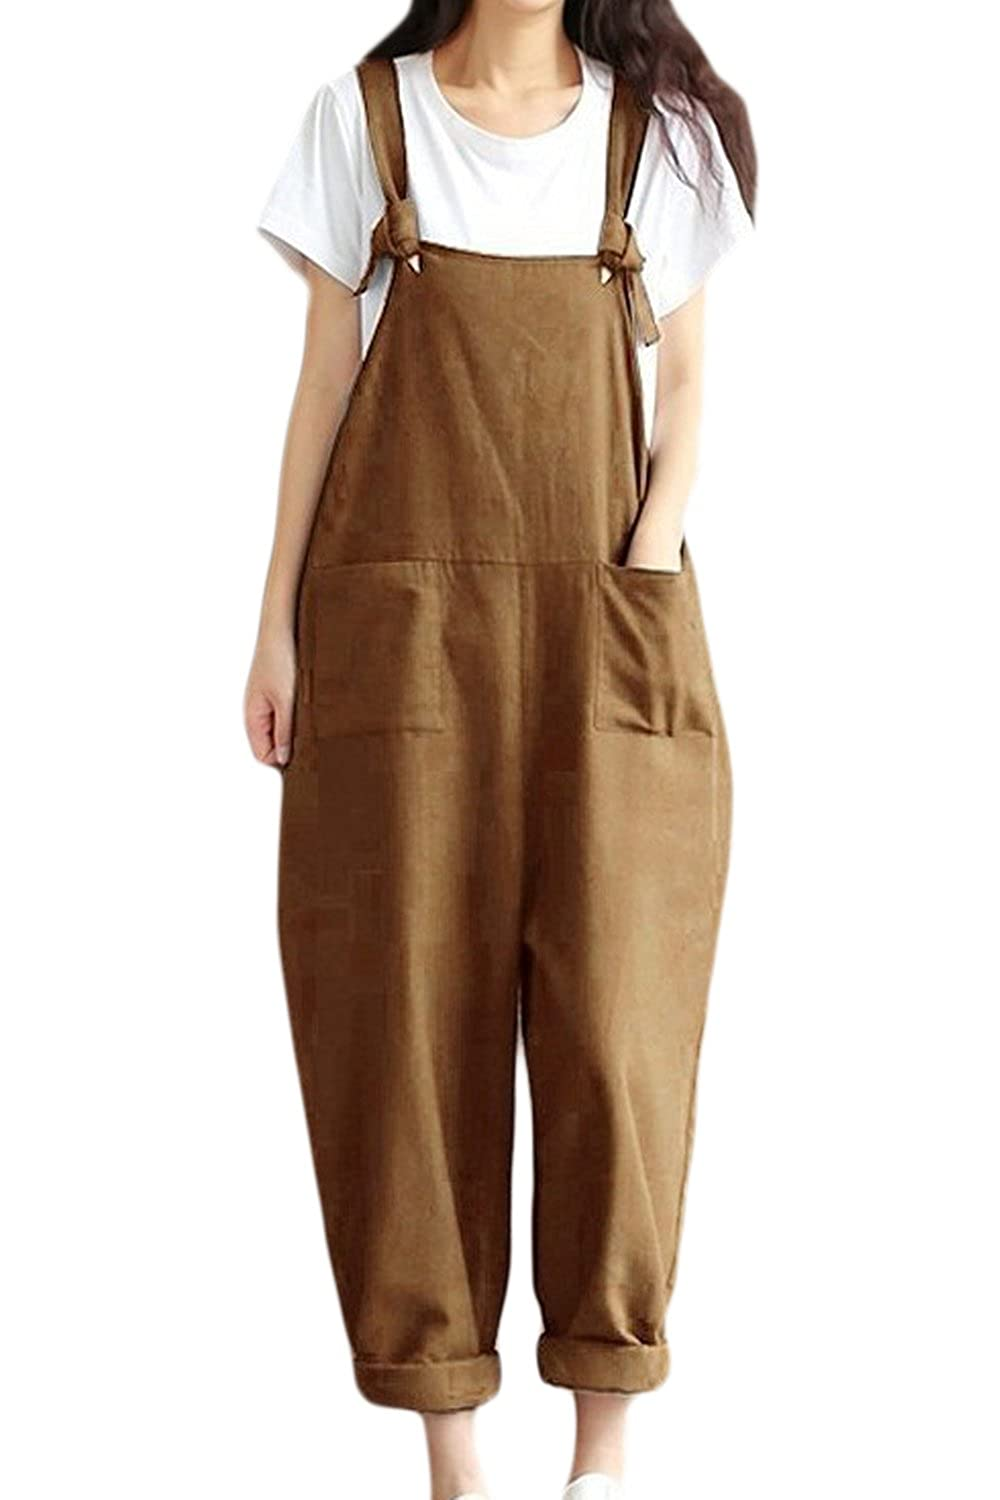 Vepodrau Women Cotton Linen Overalls Dungarees Vintage Baggy Loose Long Jumpsuits Rompers with Pockets